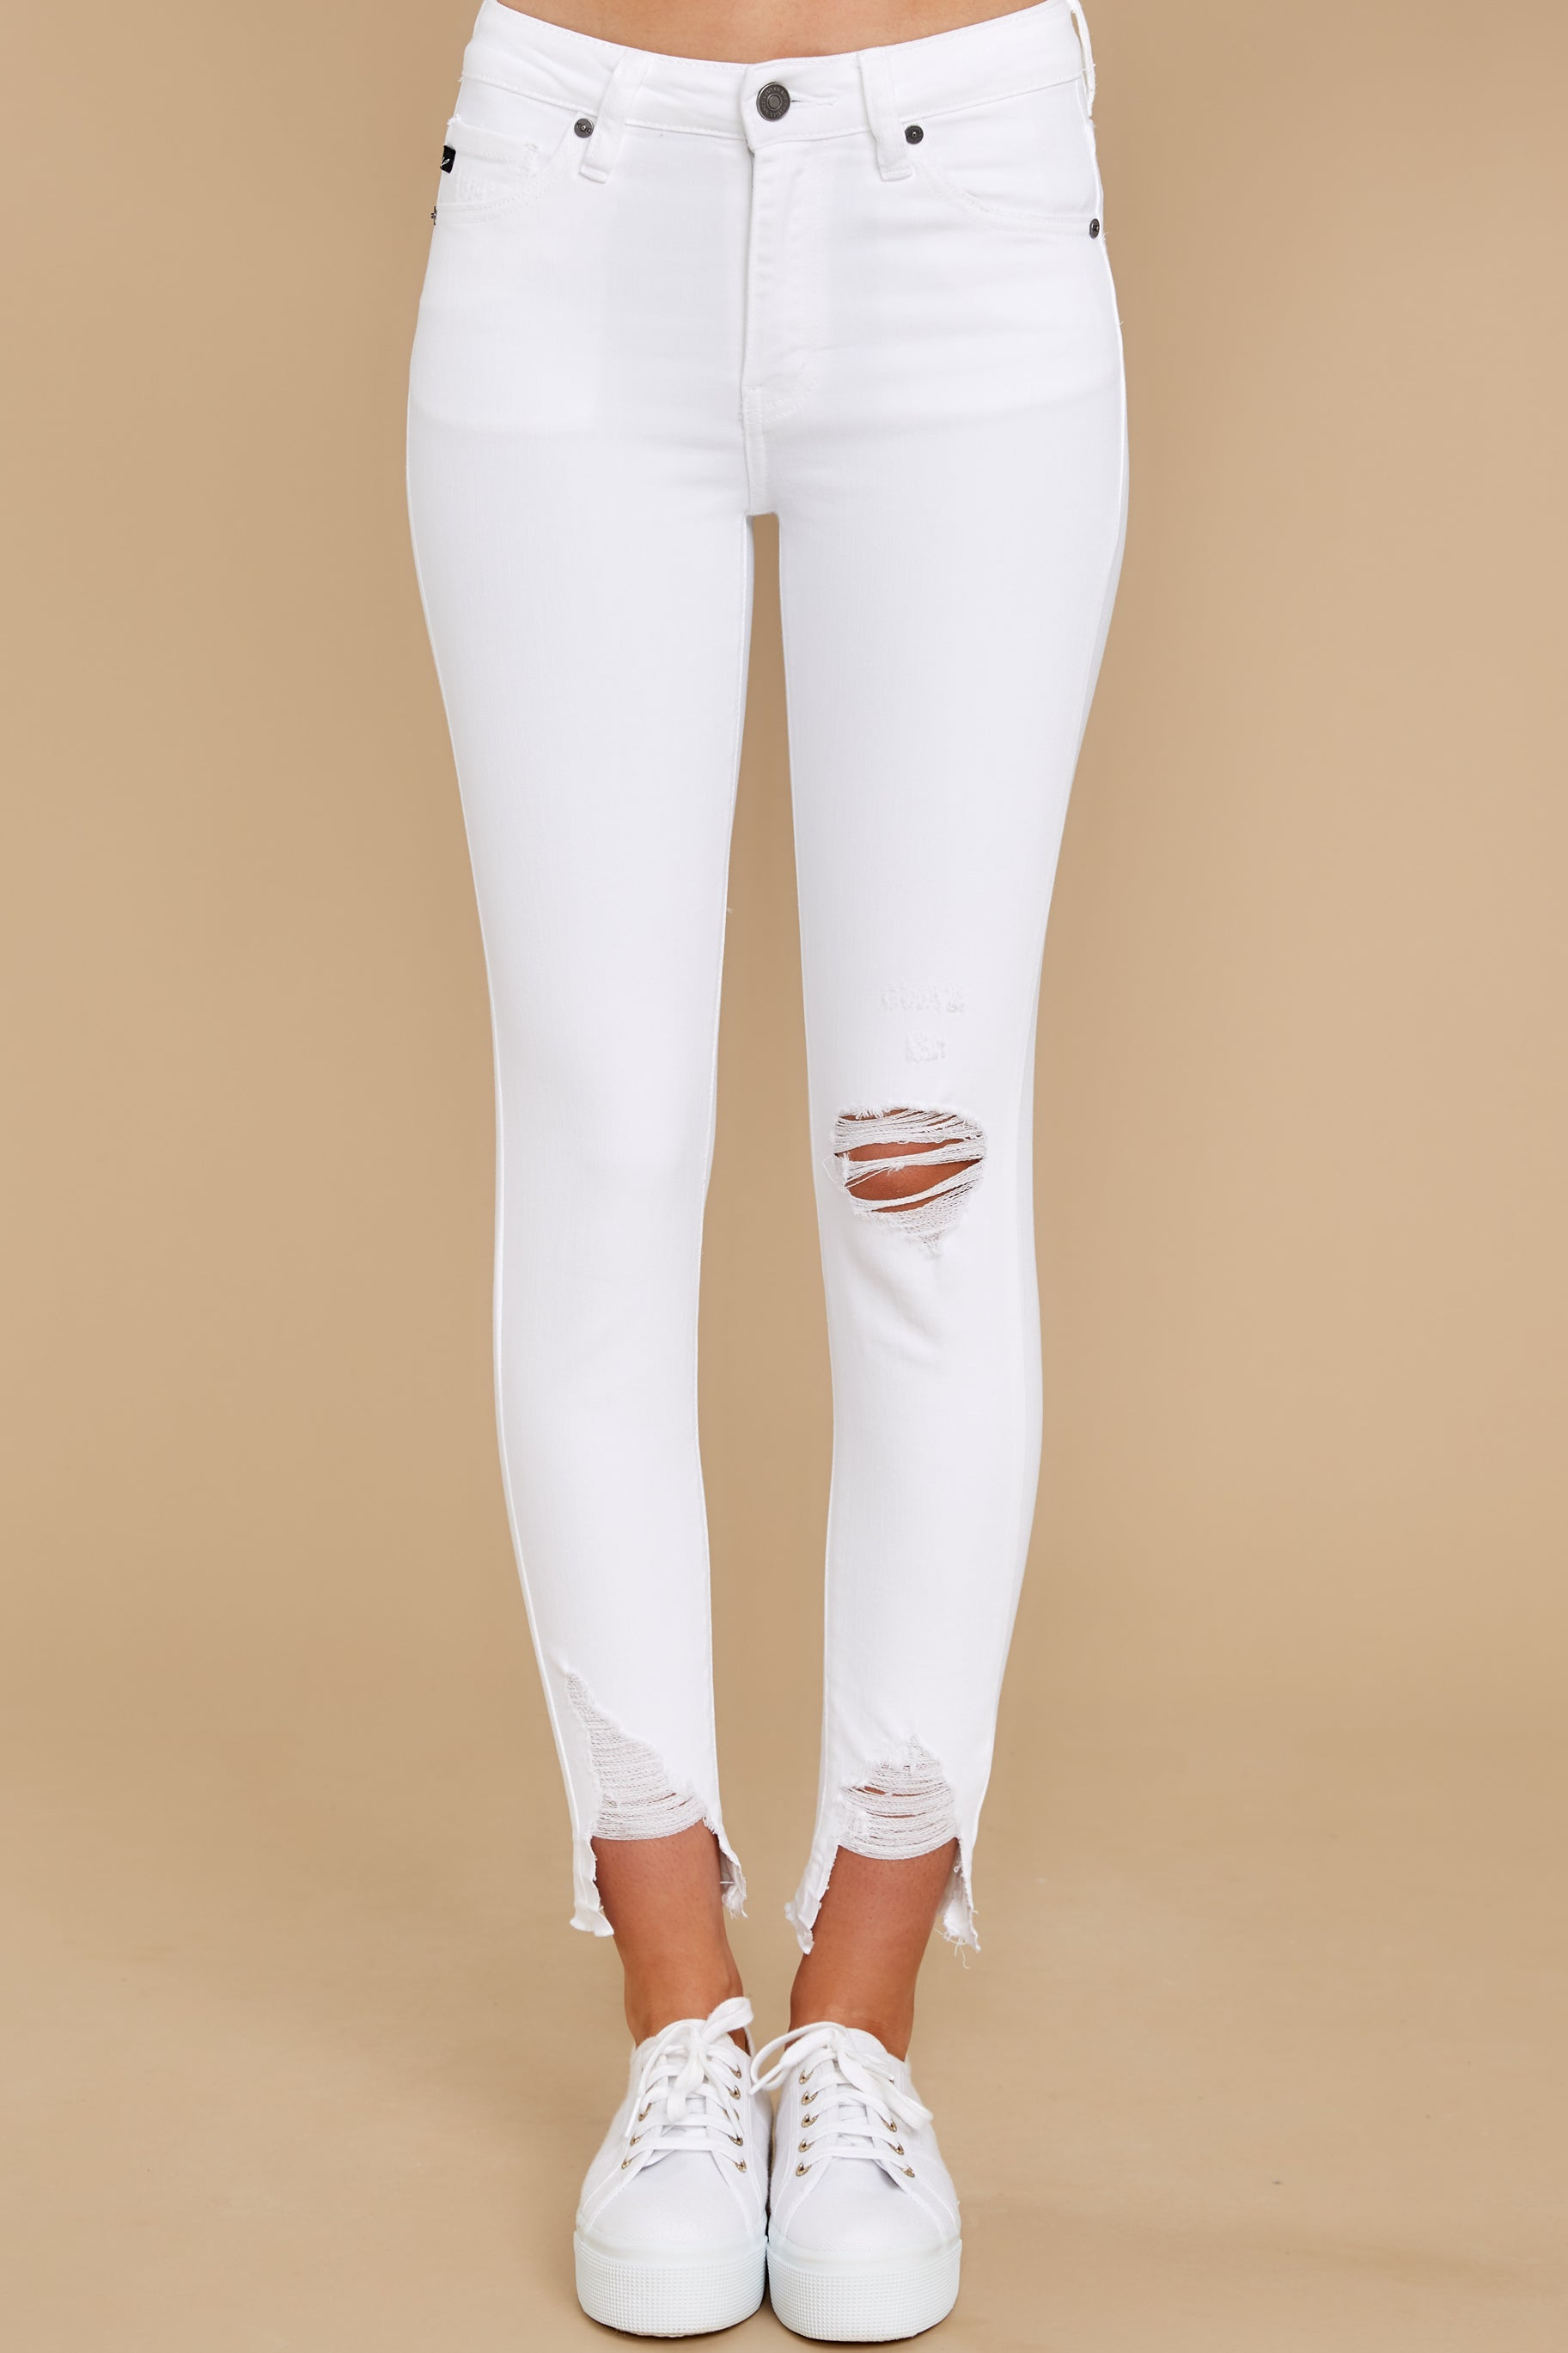 3 Come My Way White Distressed Skinny Jeans at reddress.com